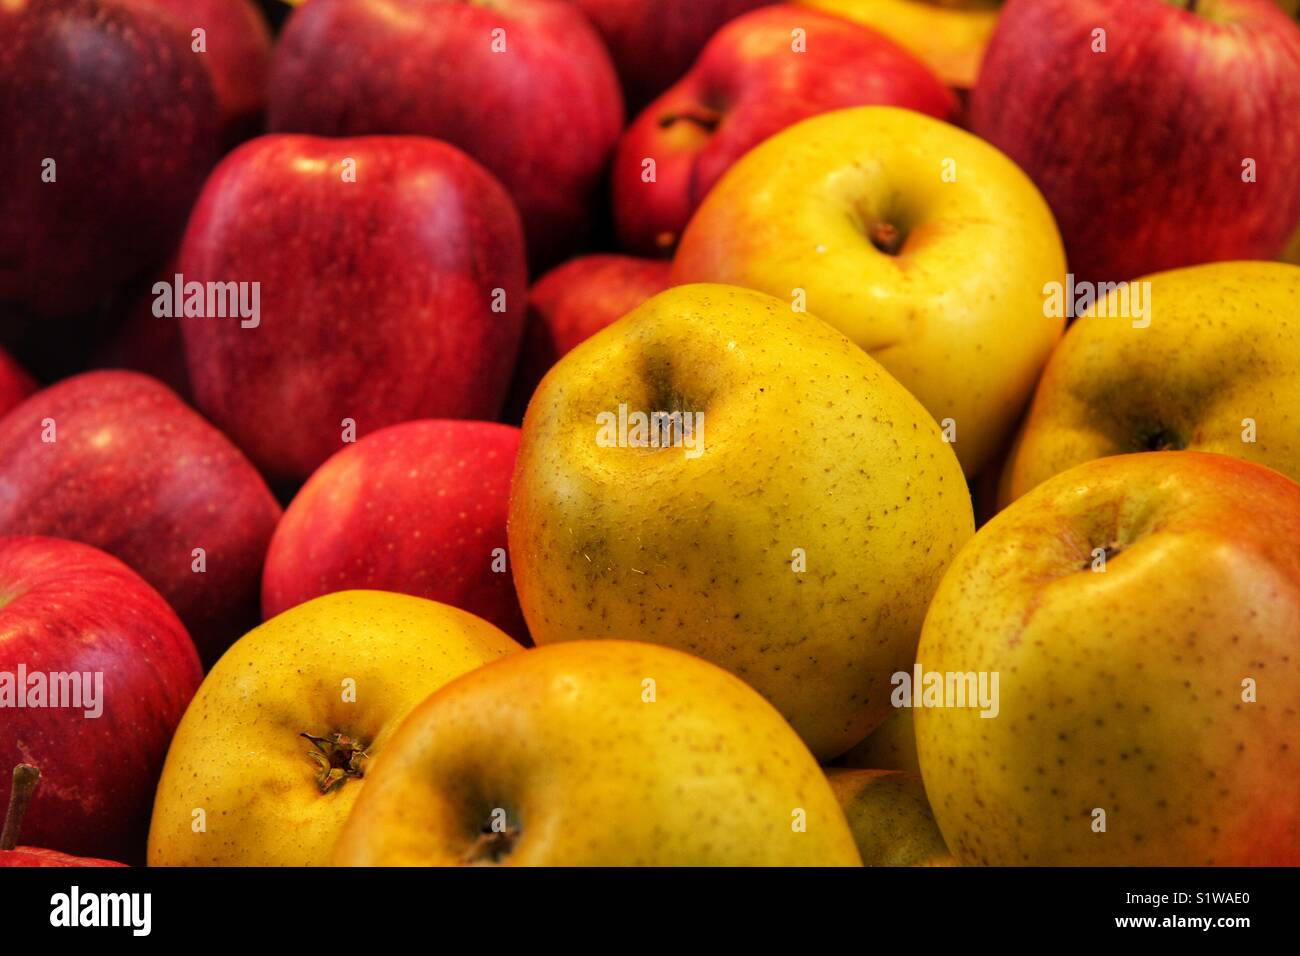 Healthy food - Stock Image